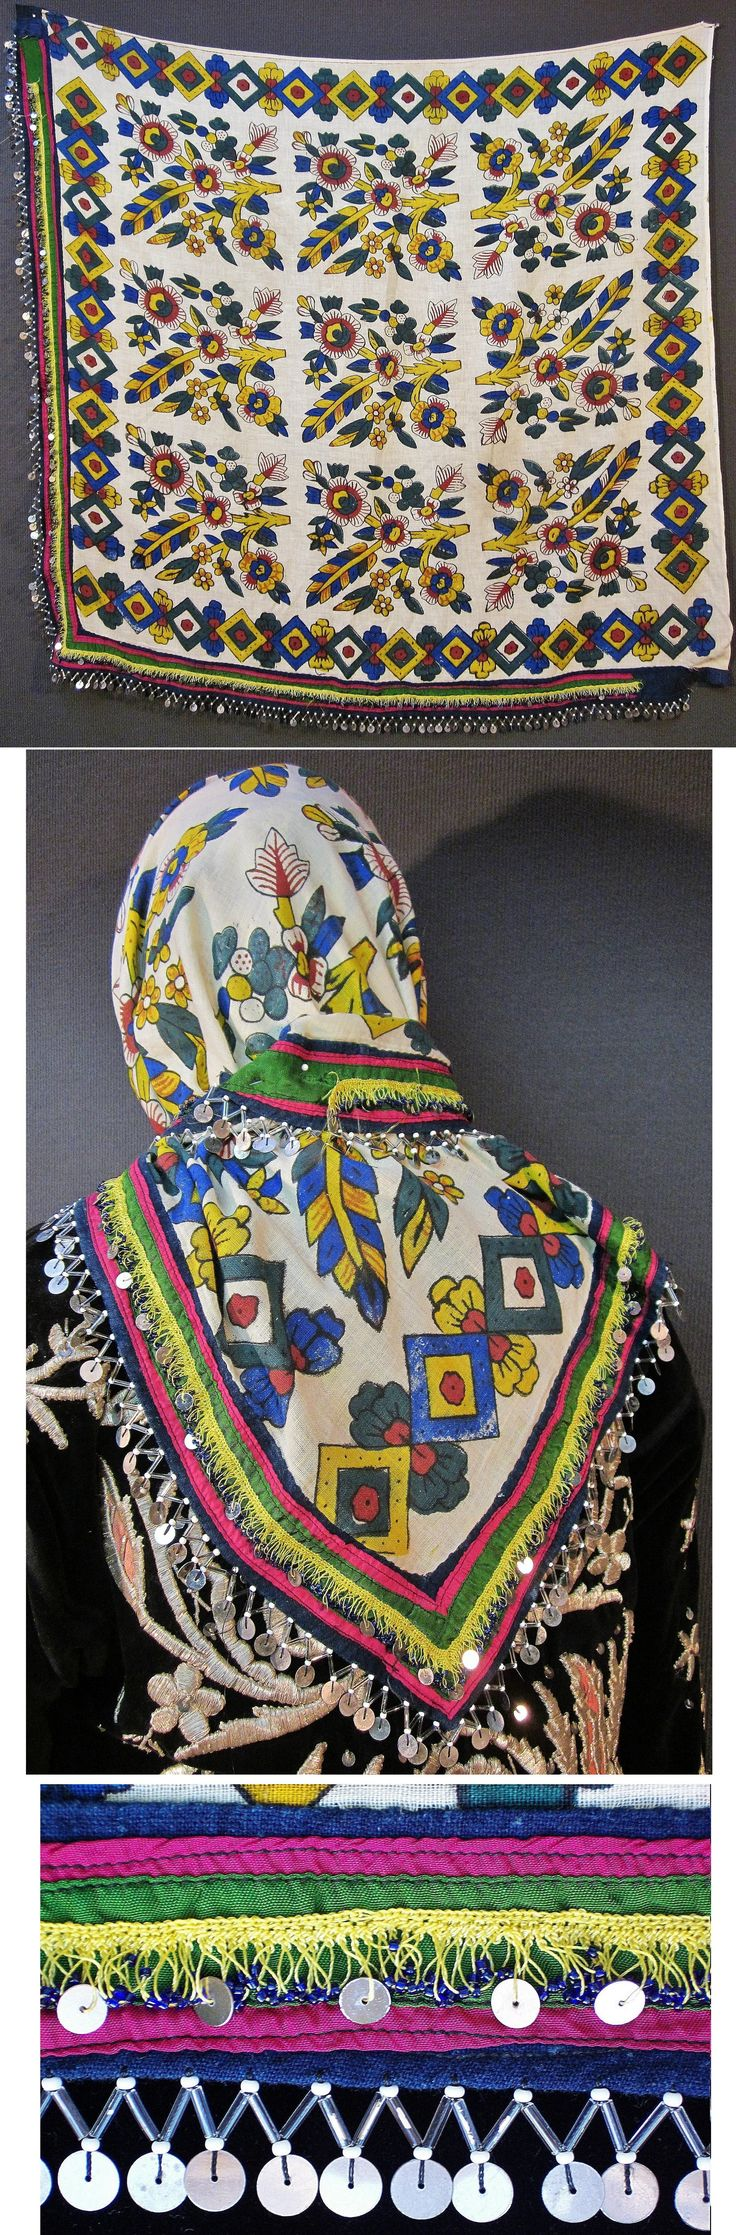 Large 'yazma' (headscarf).  From the Dursunbey district (80 km to the East of Balıkesir), ca. mid-20th century.  Part of a rural festive headgear.  Block-printed cotton, adorned with cotton 'oya' (Turkish needle lace) integrating blue glass beads and metal sequins, and edged (on two sides) with glass beads combined with metal sequins.  (Inv.n° yaz105 - Kavak Costume Collection - Antwerpen/Belgium).